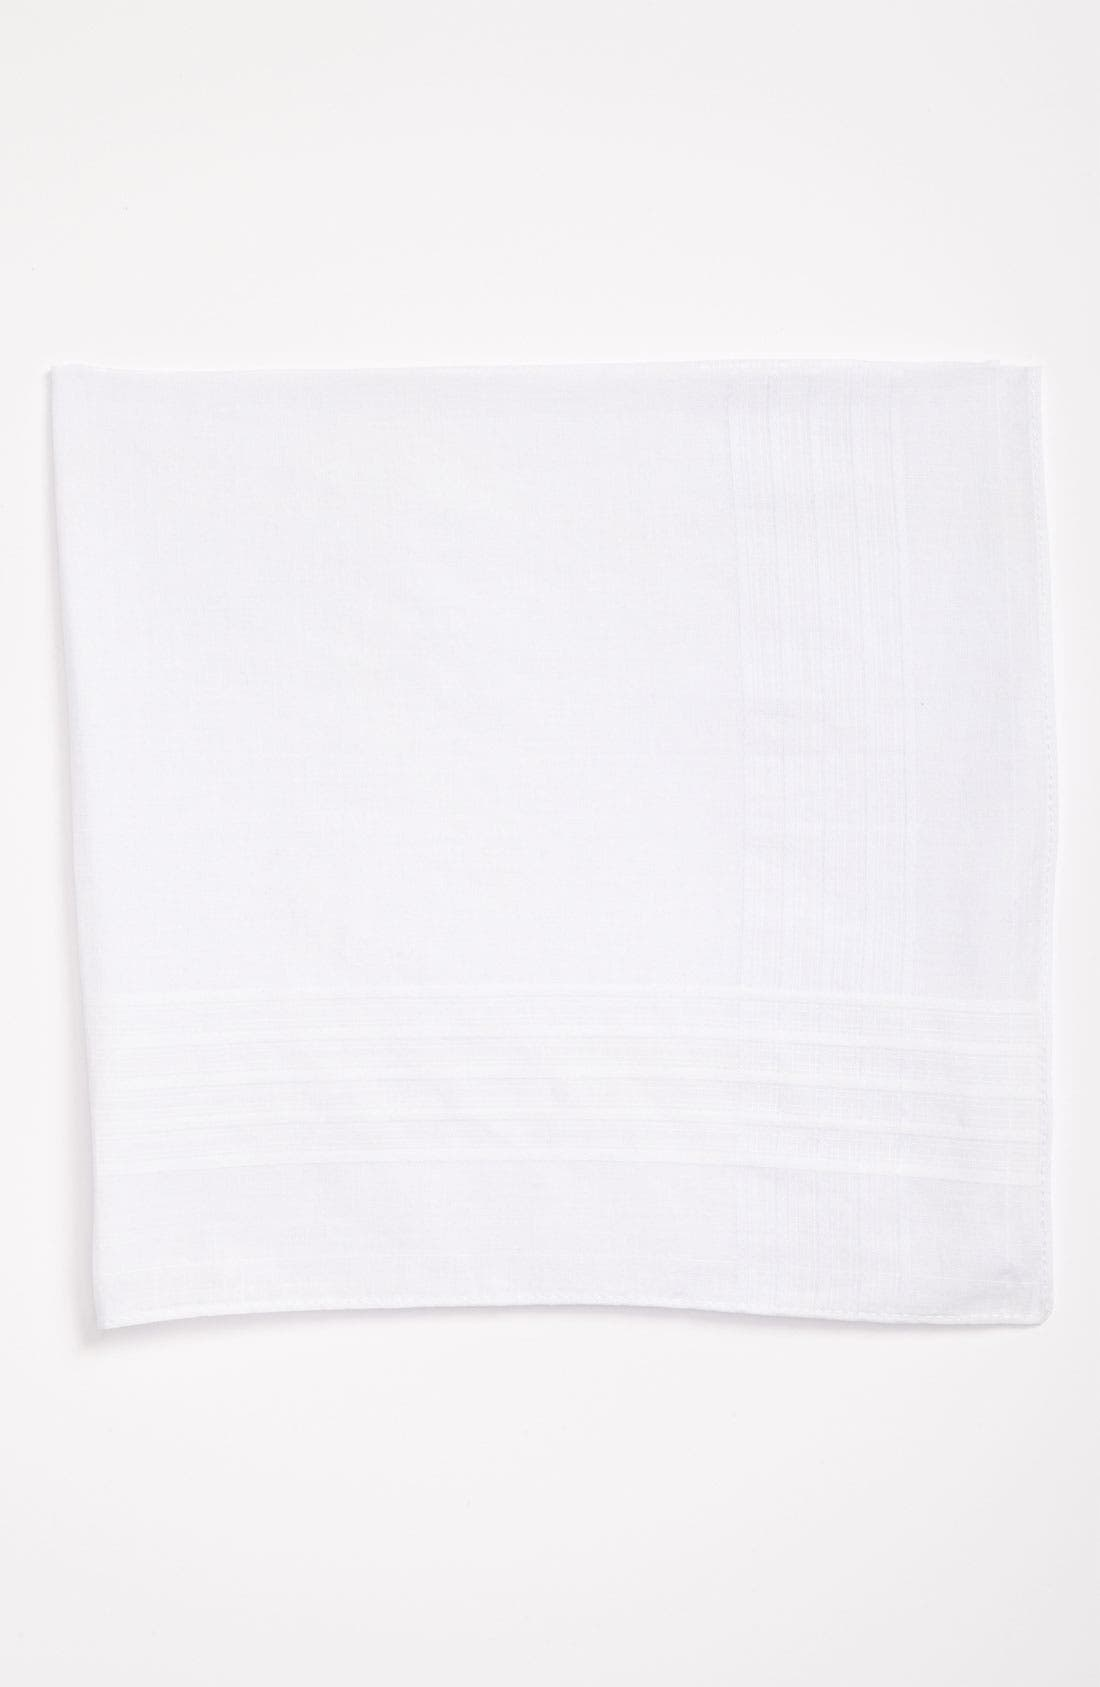 Alternate Image 1 Selected - Nordstrom Men's Shop Cotton Handkerchief (7-Pack)